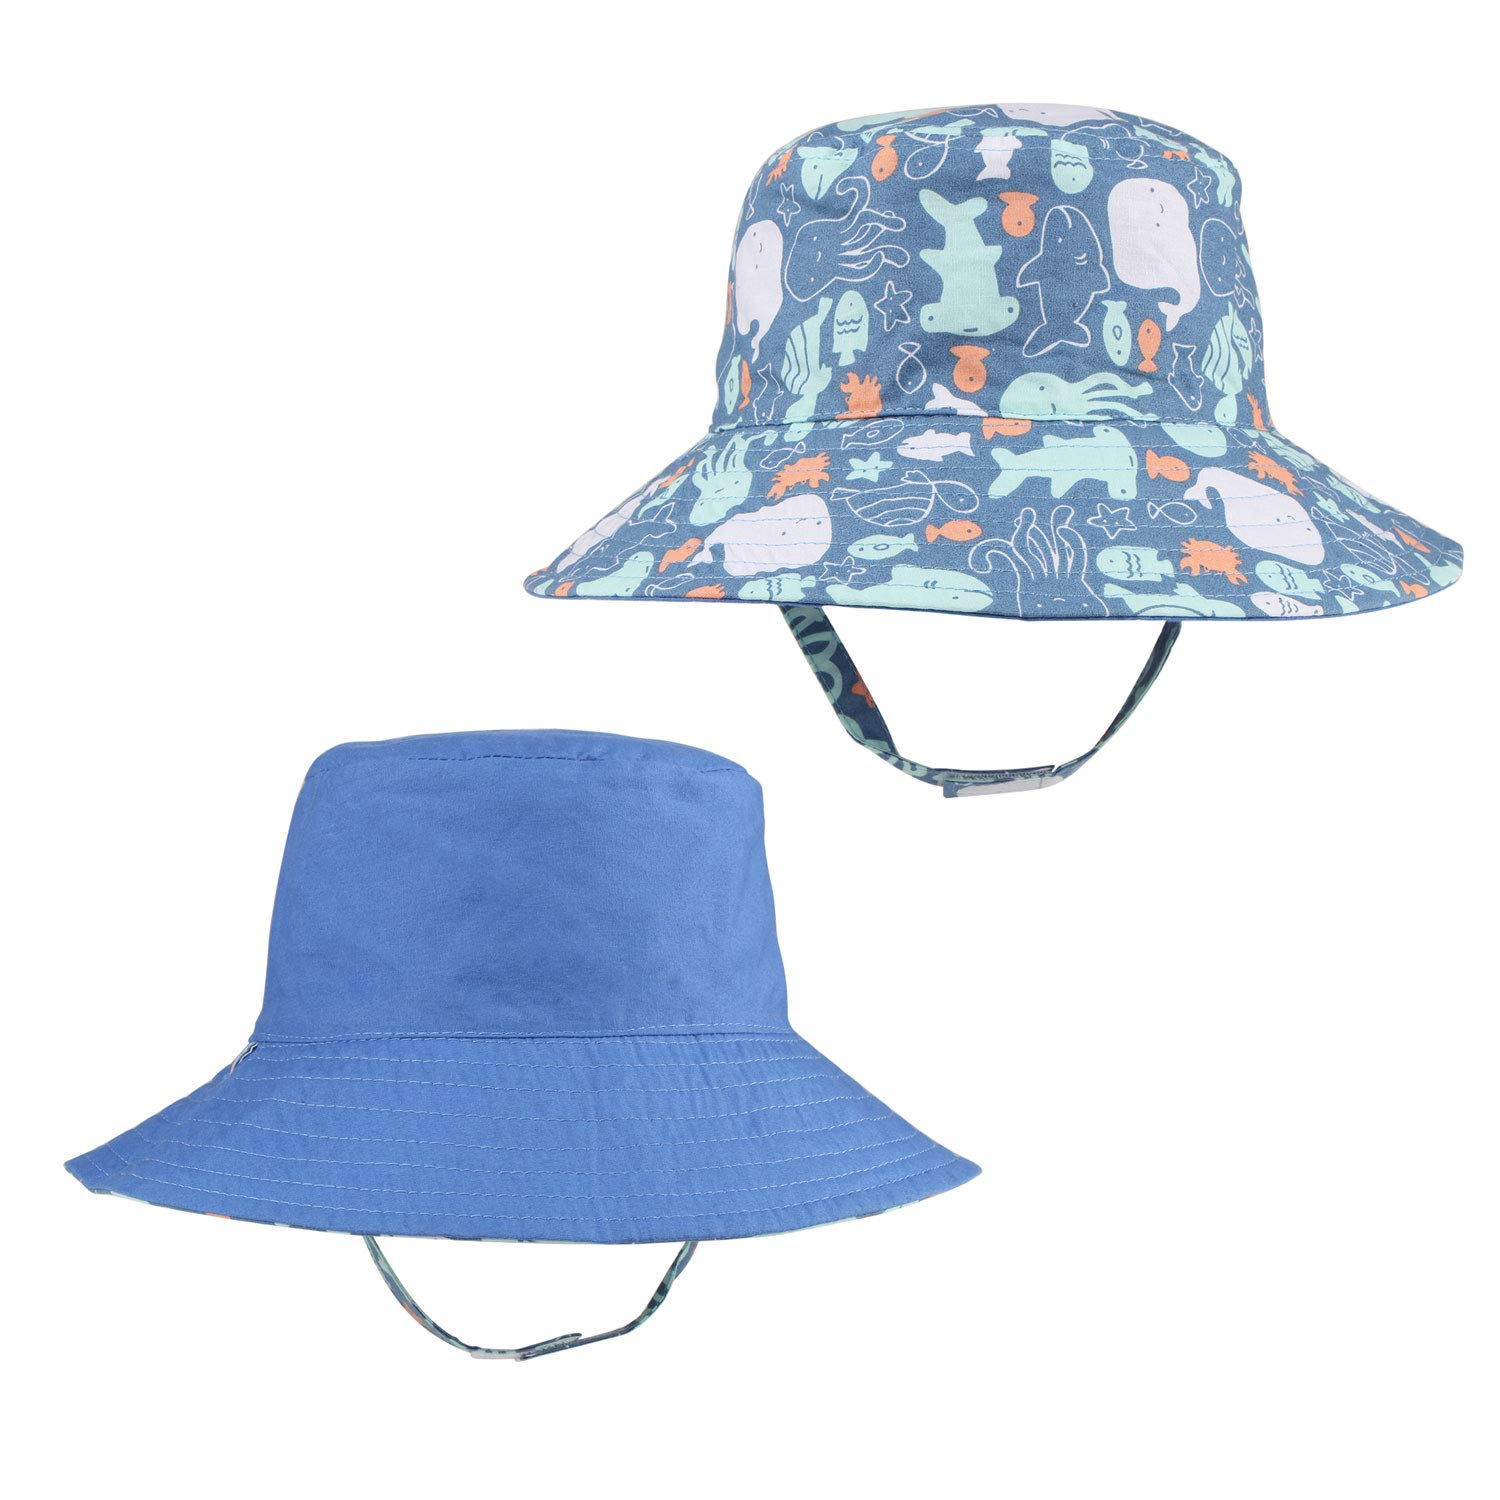 Hats Baby Boy Dinosaur Cotton Sun Hats with Chin Strap & Caps Navy Dino  Adjustable Clothing, Shoes & Accessories